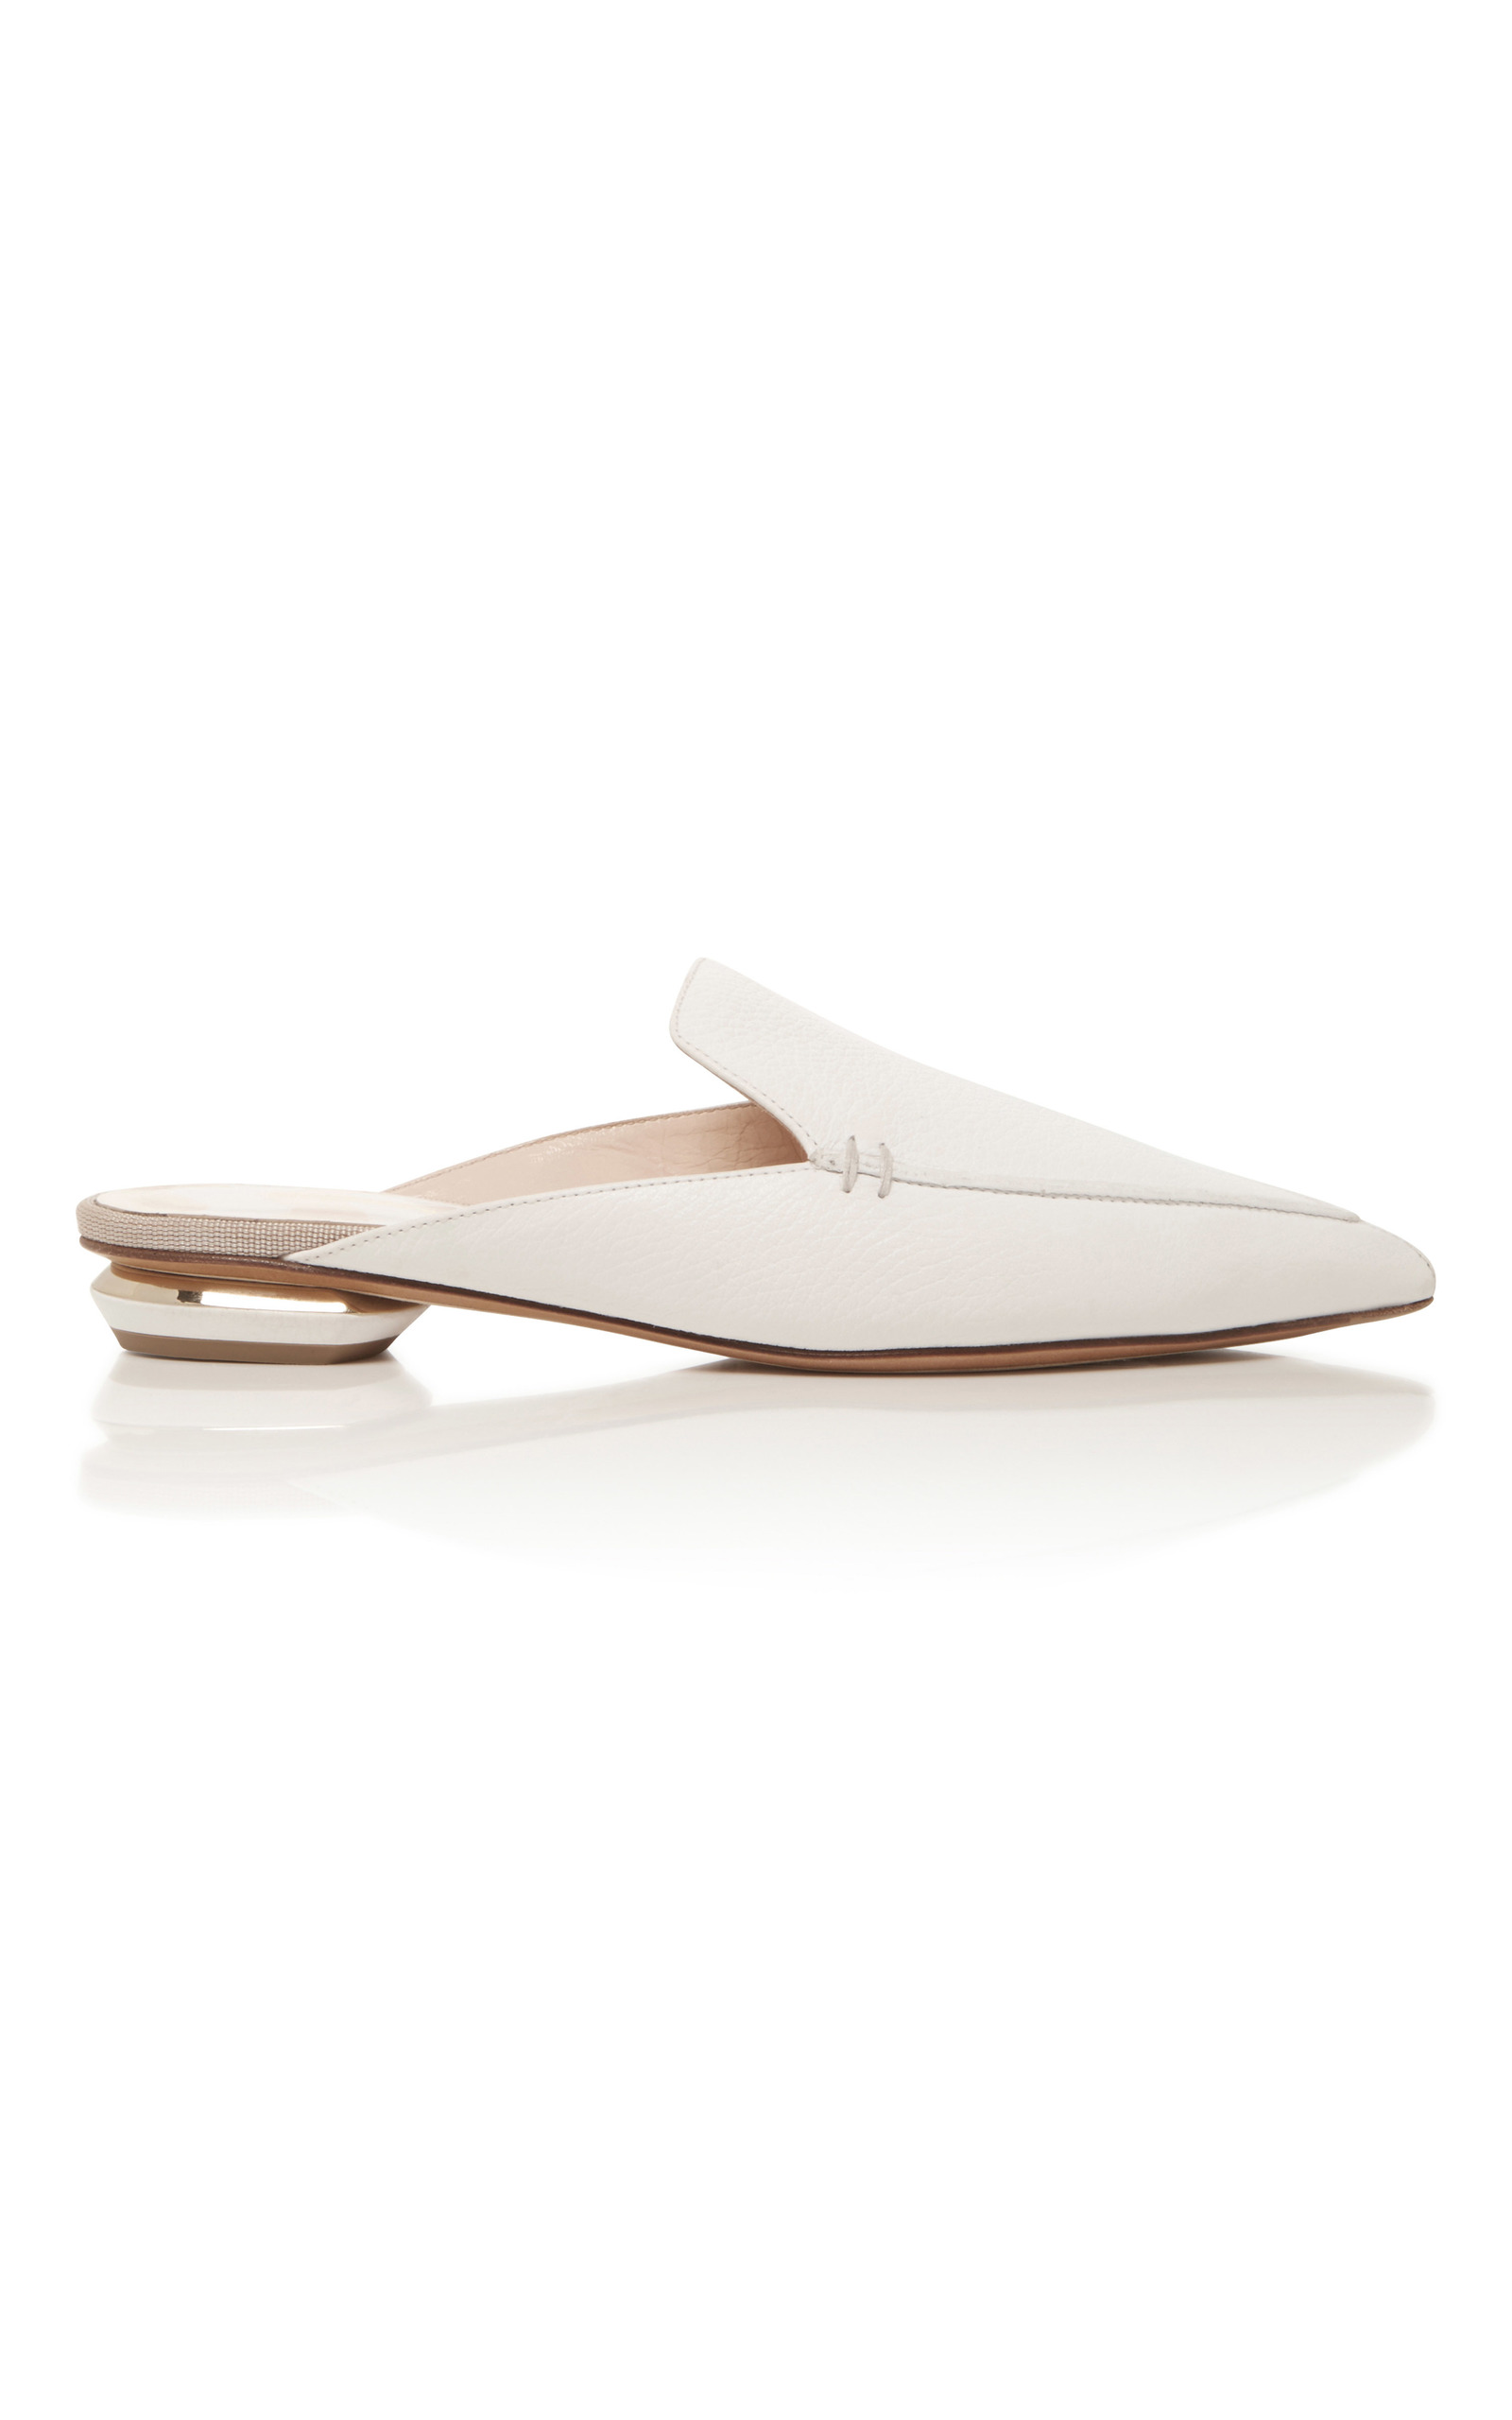 9c0dd3863e8 Nicholas Kirkwood Beya Grained-Leather Backless Loafers In White ...